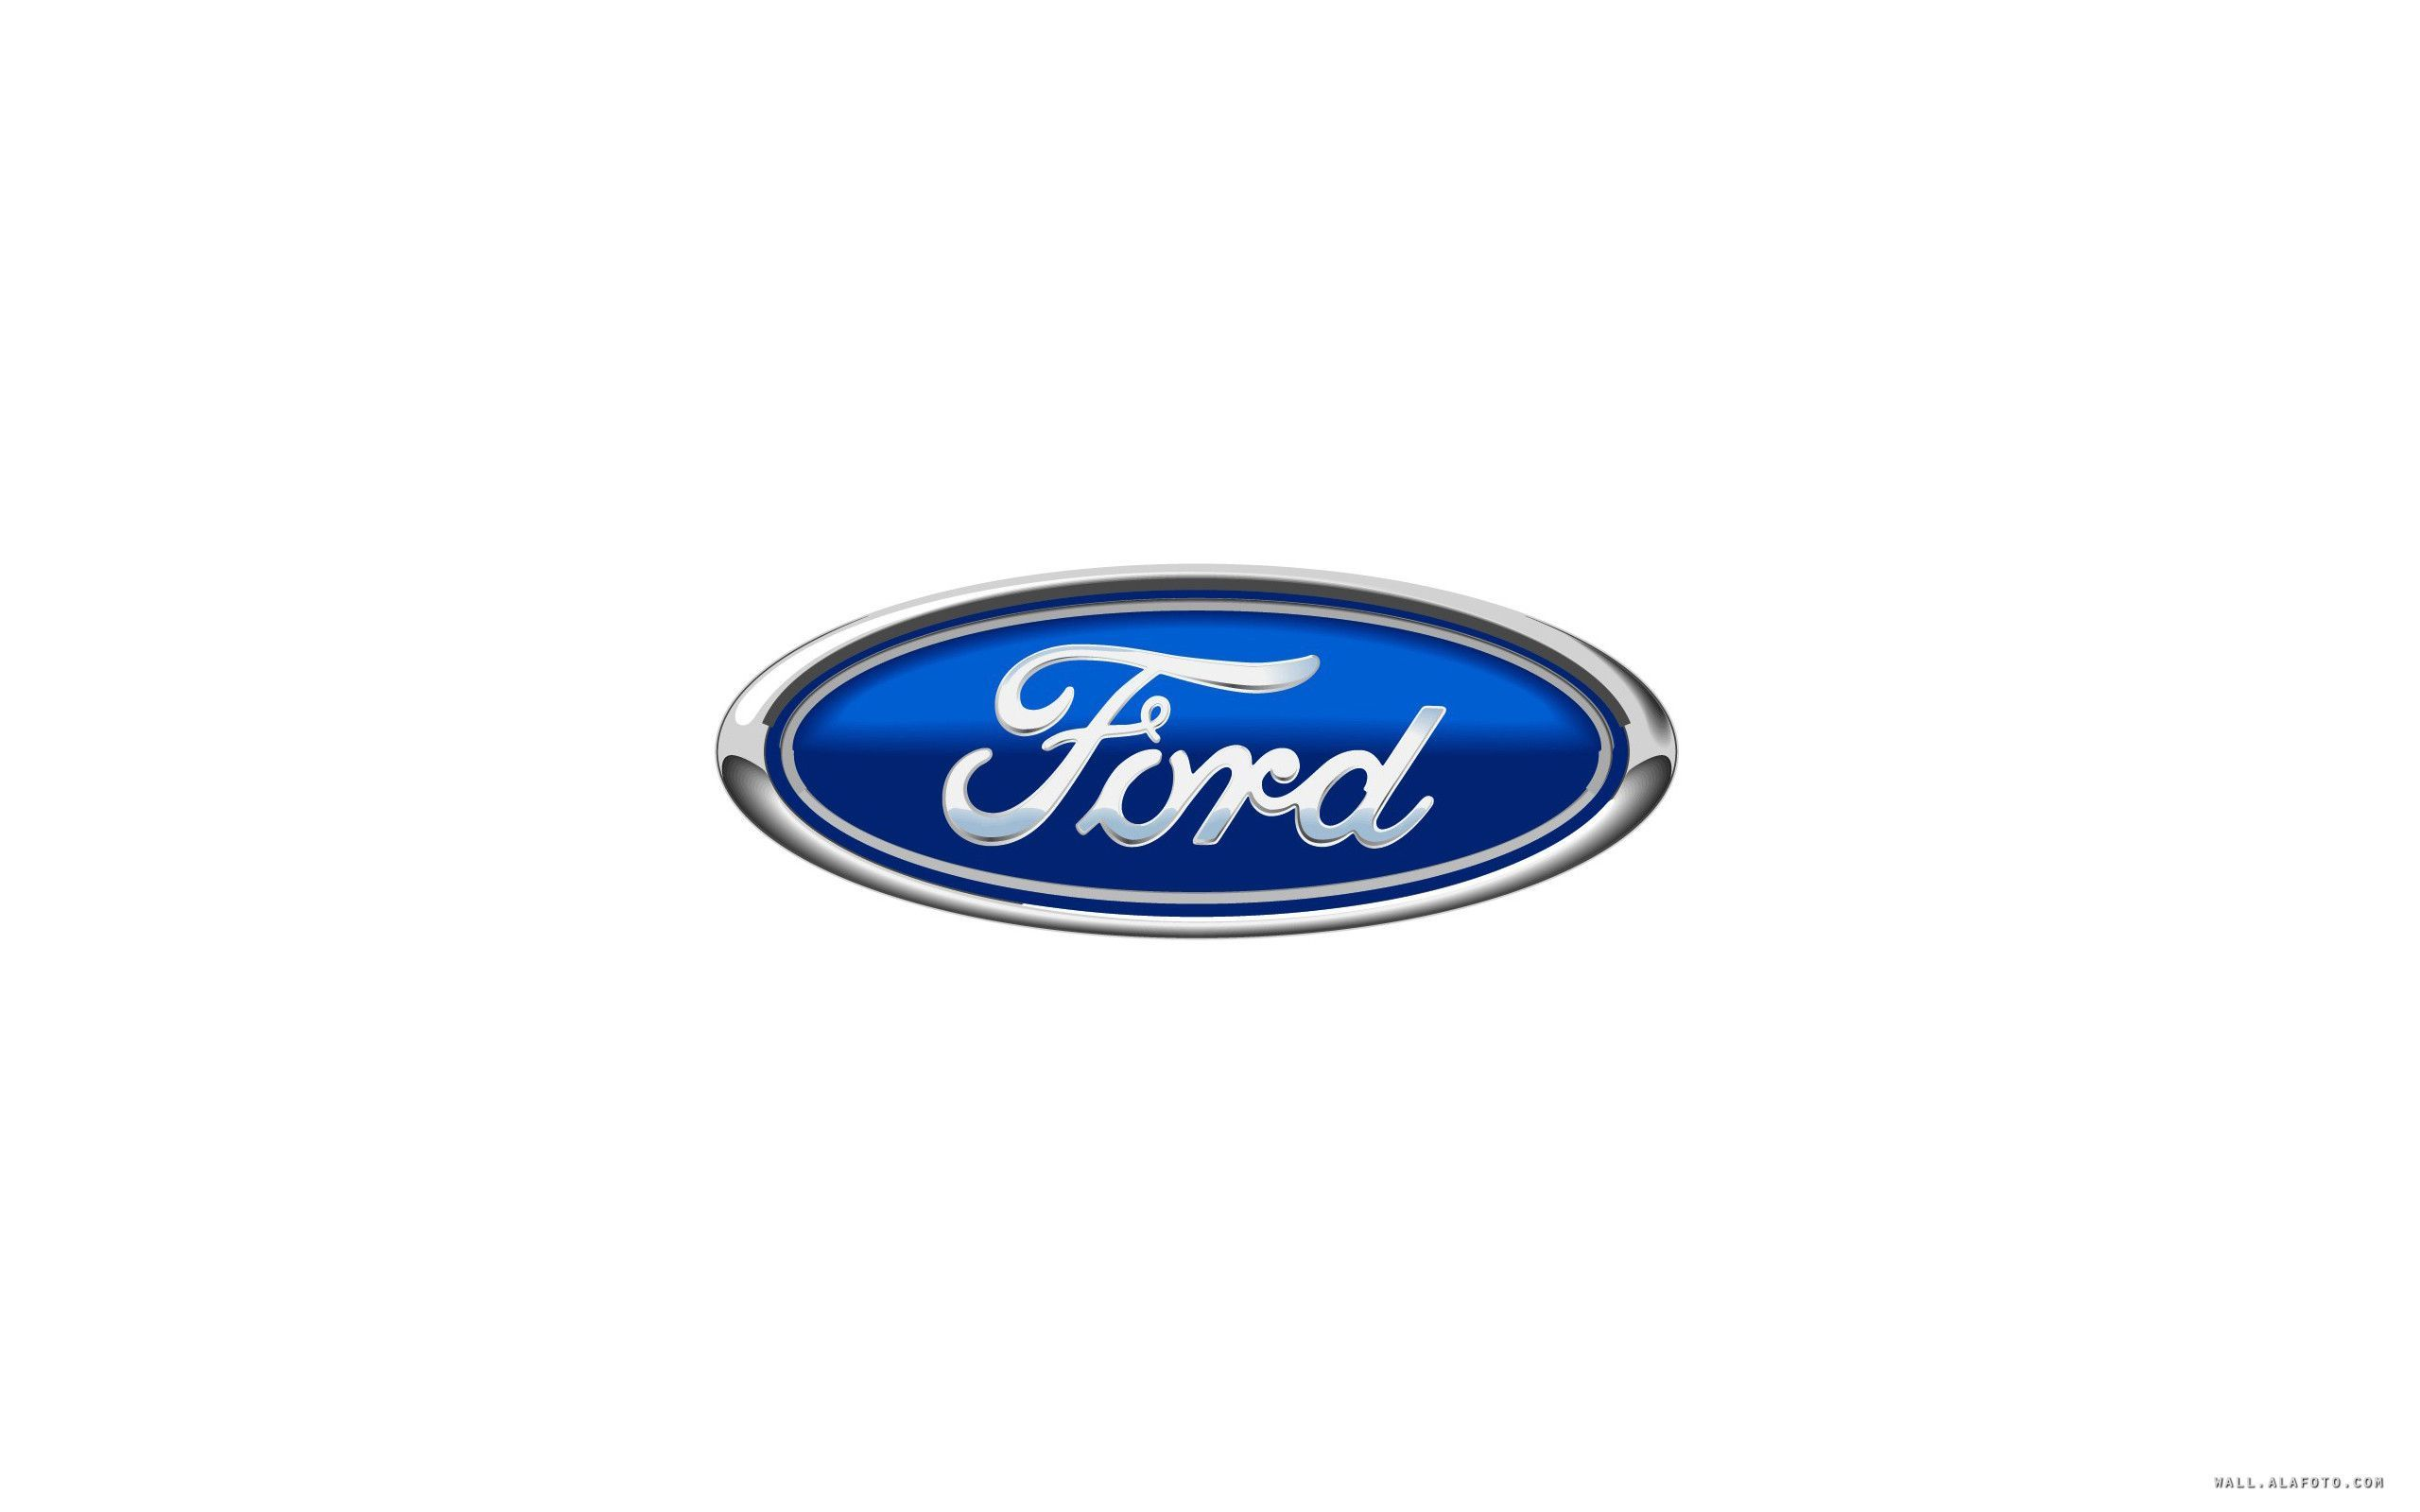 Download Ford Logo HD Wallpaper Gallery